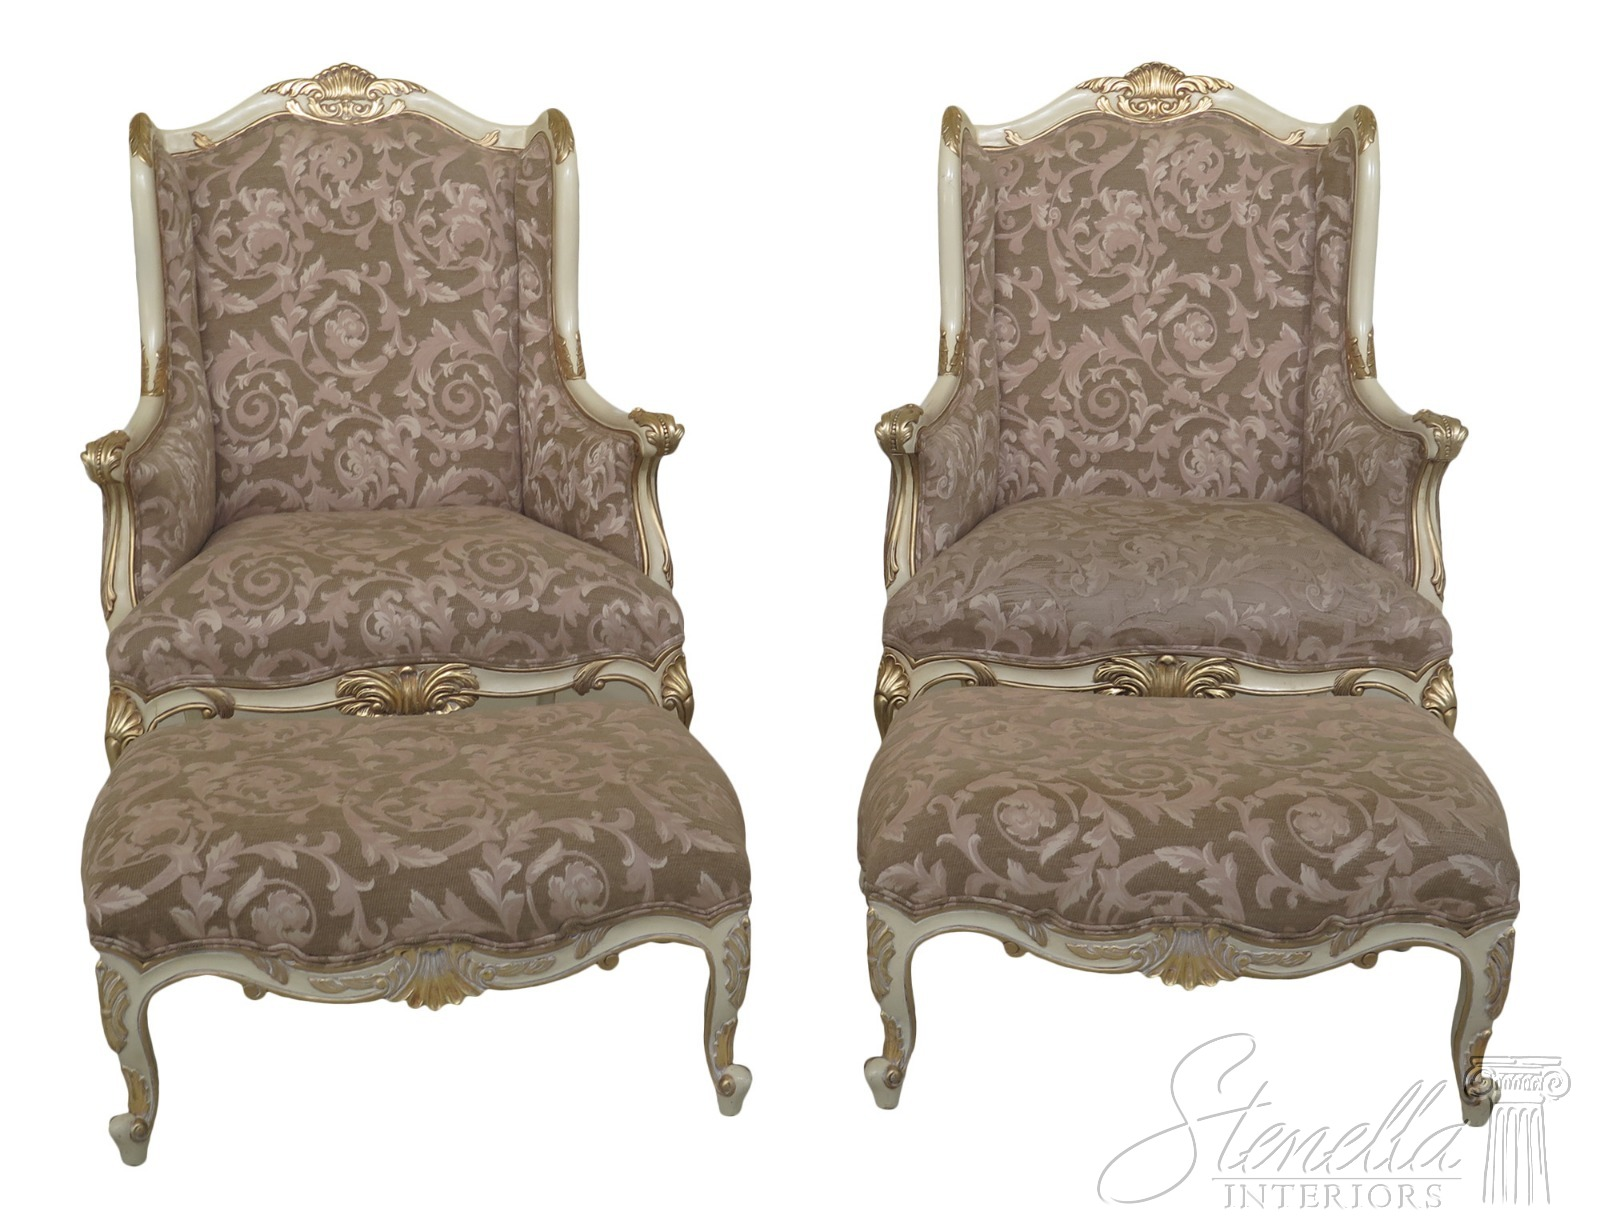 Miraculous Details About F31223Ec 24Ec Pair French Louis Xiv Style White Chair Matching Ottoman Gmtry Best Dining Table And Chair Ideas Images Gmtryco